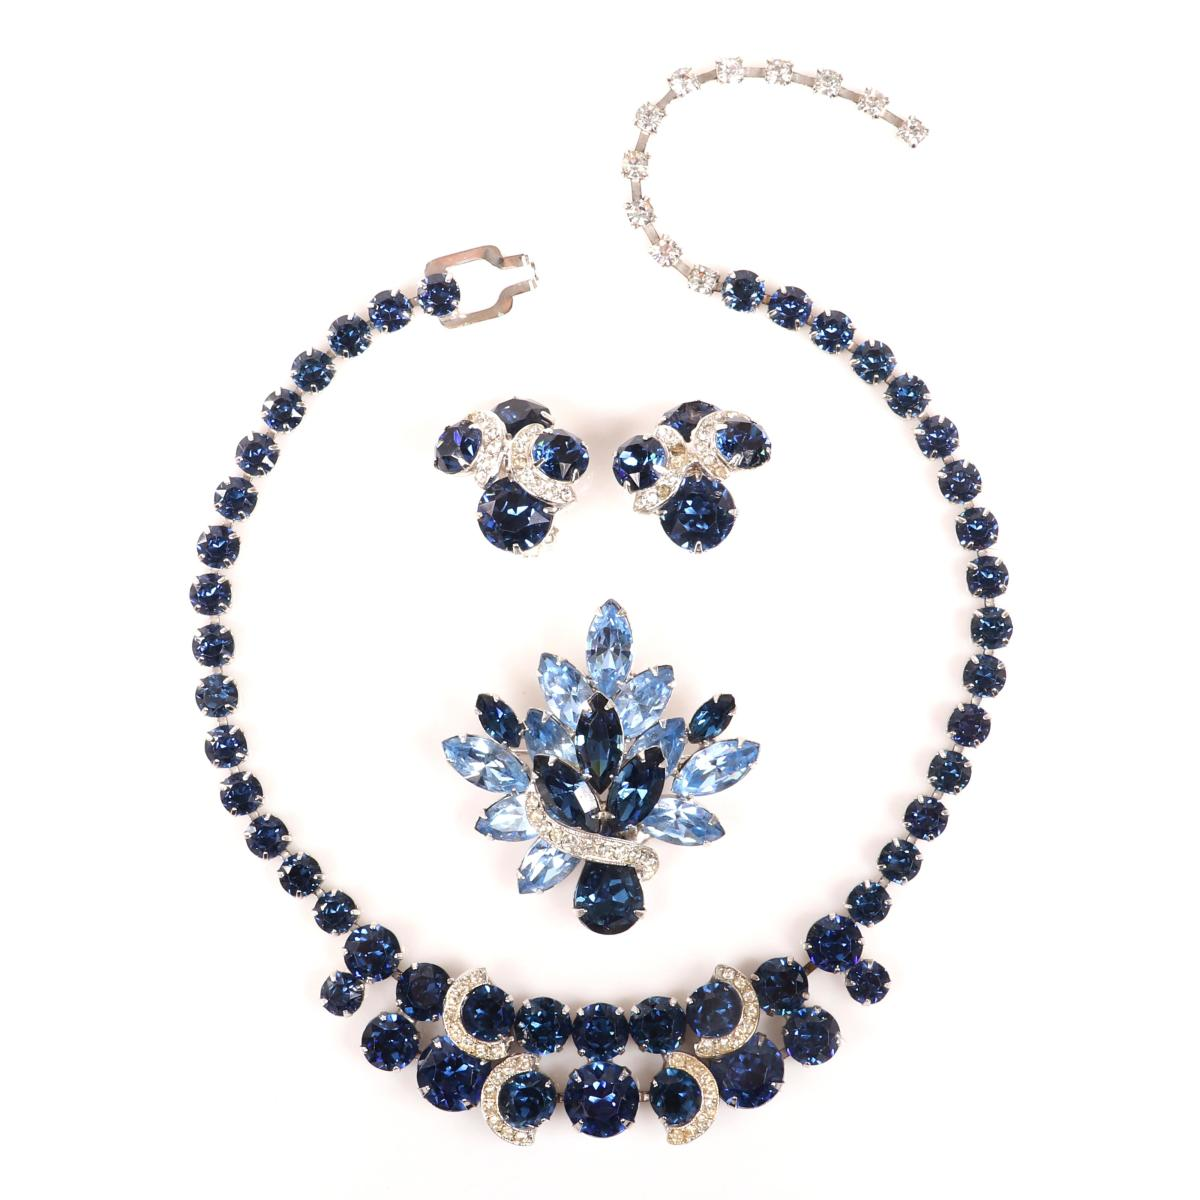 Costume jewelry came in at No. 3 with ages 20-40. Eisenberg sapphire crystal and pave group with matching necklace, earrings with semicircular rhinestone accents and layered brooch with marquise stones, c. 1950s; $225.